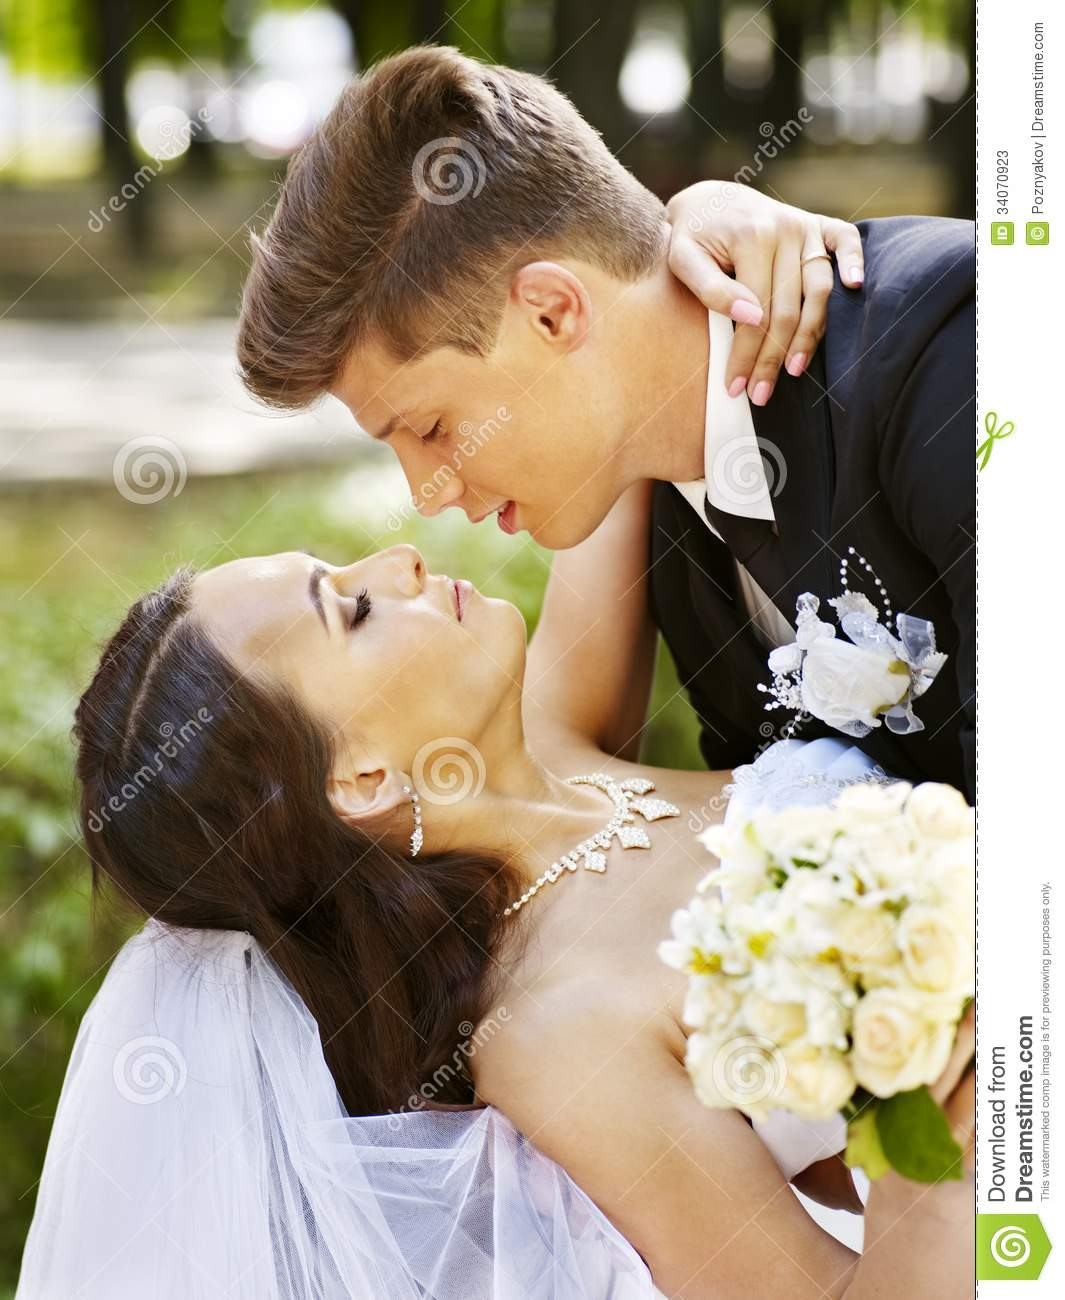 Image Result For Where To Sell A Wedding Dress